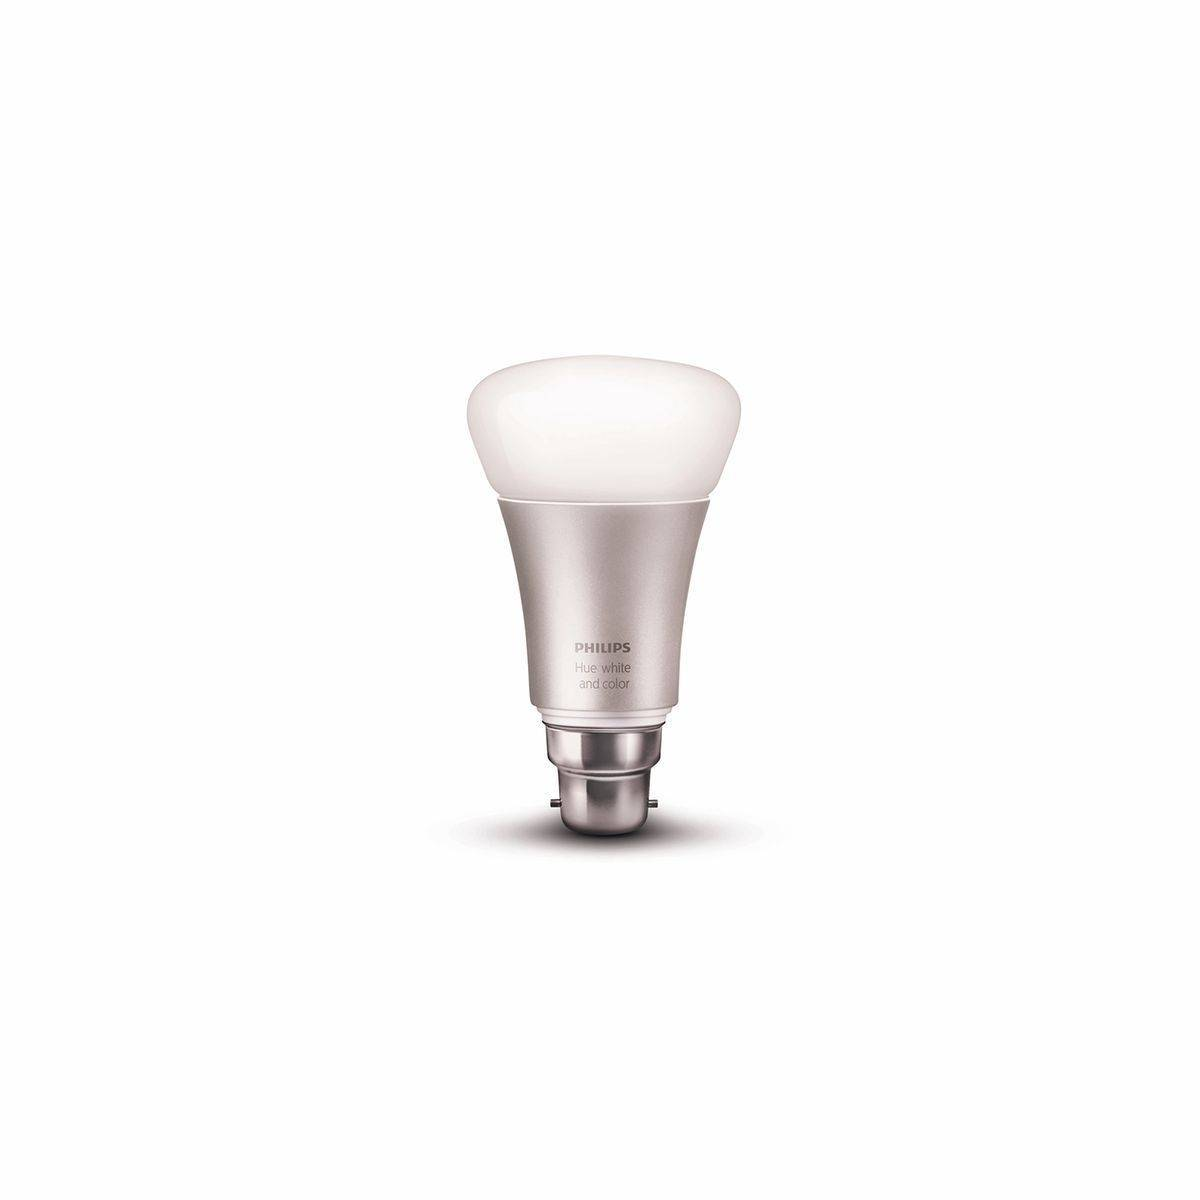 Philips Ampoule 8718696461754 White and color ambiance - PHILIPS HUE